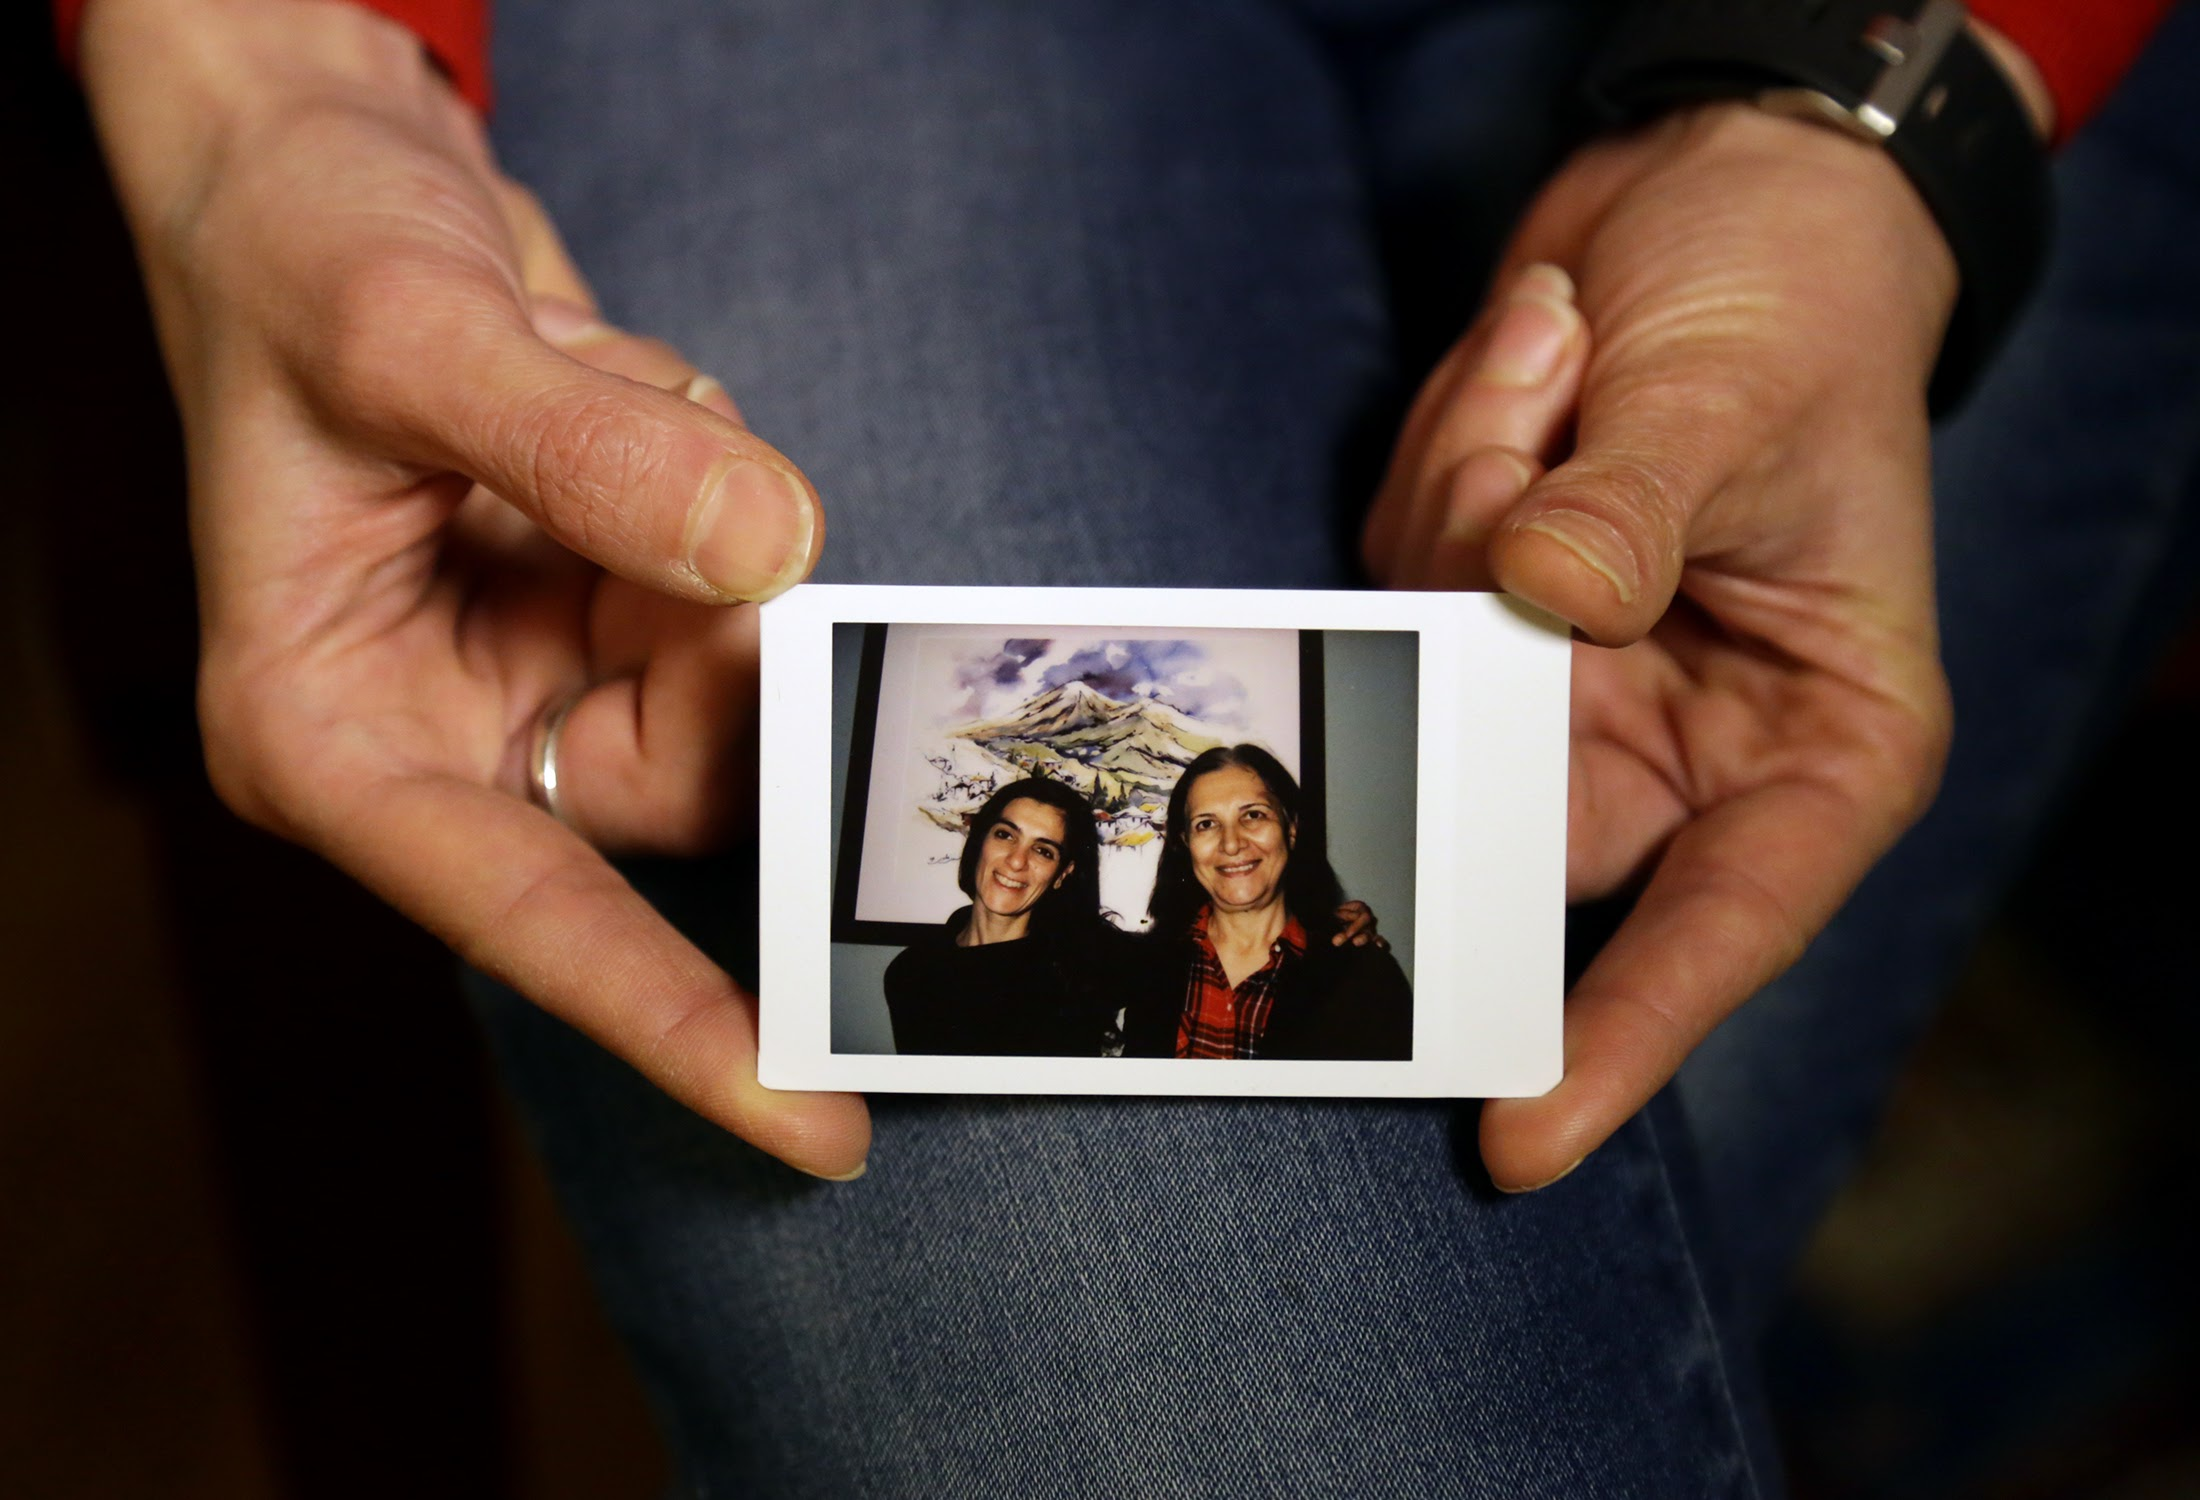 Rosta Farzan's mother, Simin Dehghan (right), is an Iranian citizen and has a green card. She spends about six months a year visiting her daughter, a Pitt professor, in Pittsburgh and volunteering at the Carnegie Museum of Art. But now, if Trump's order stands, her mother will be barred from coming back. (Photo by Guy Wathen/PublicSource)